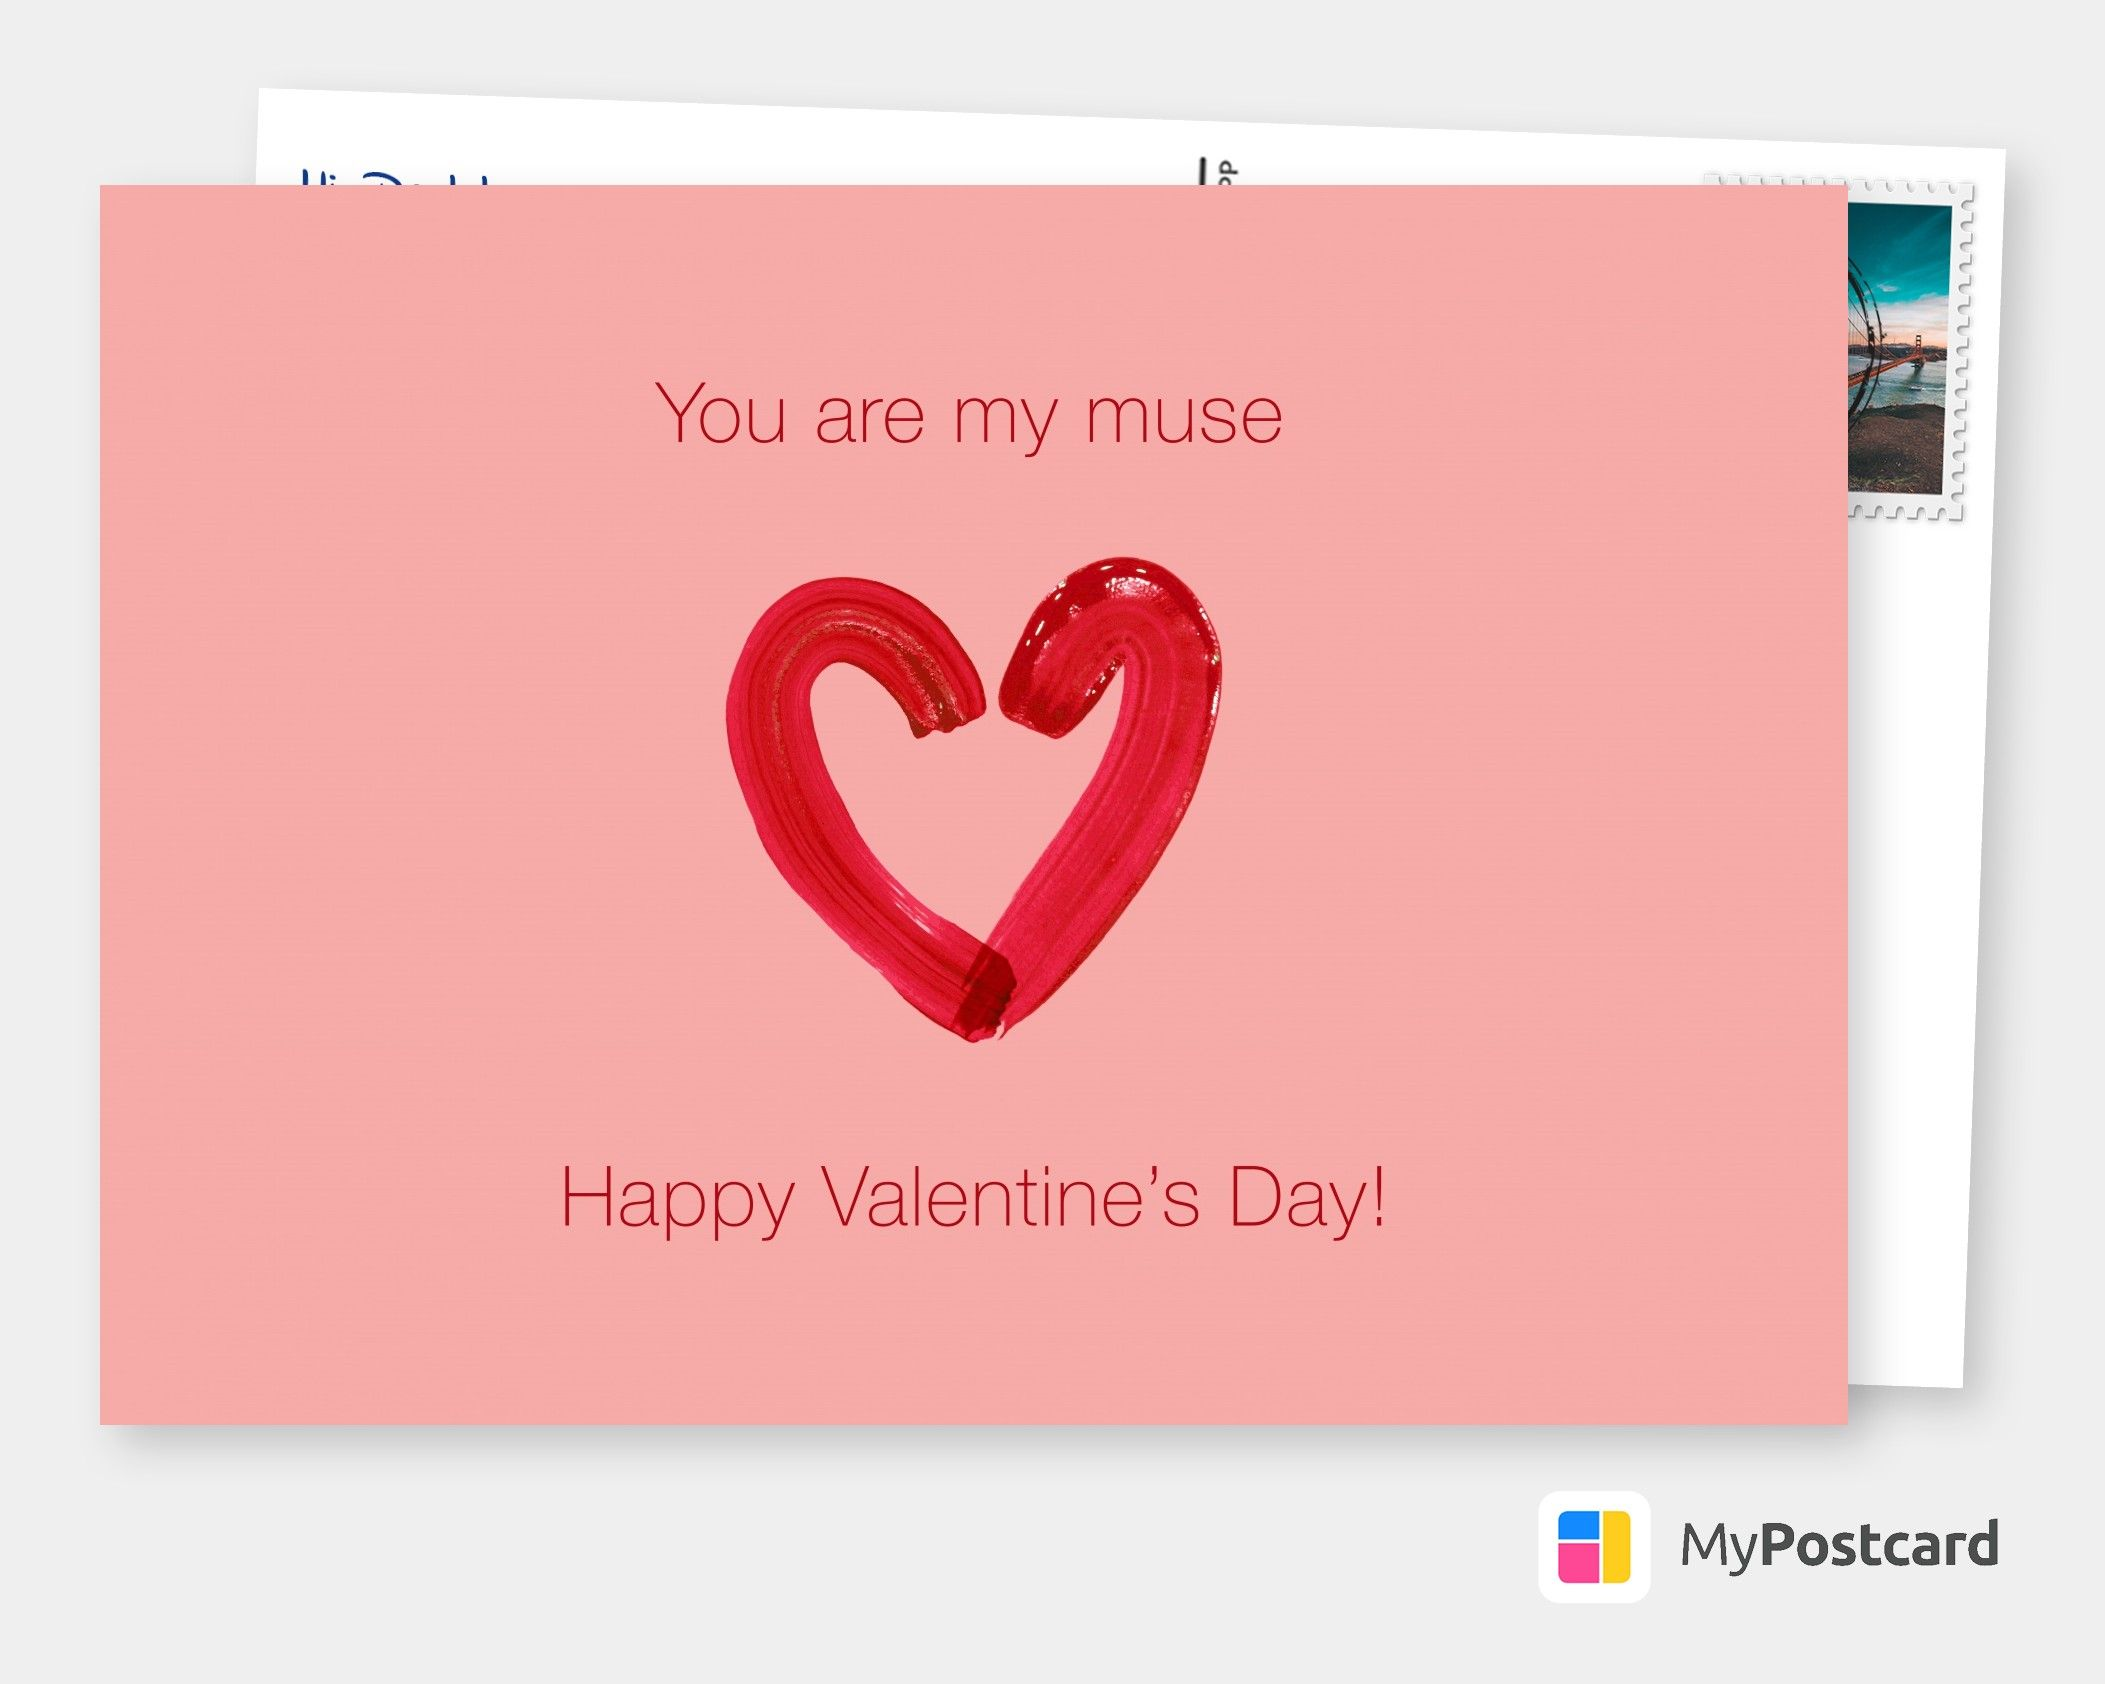 My Muse Love Cards Quotes Send Real Postcards Online